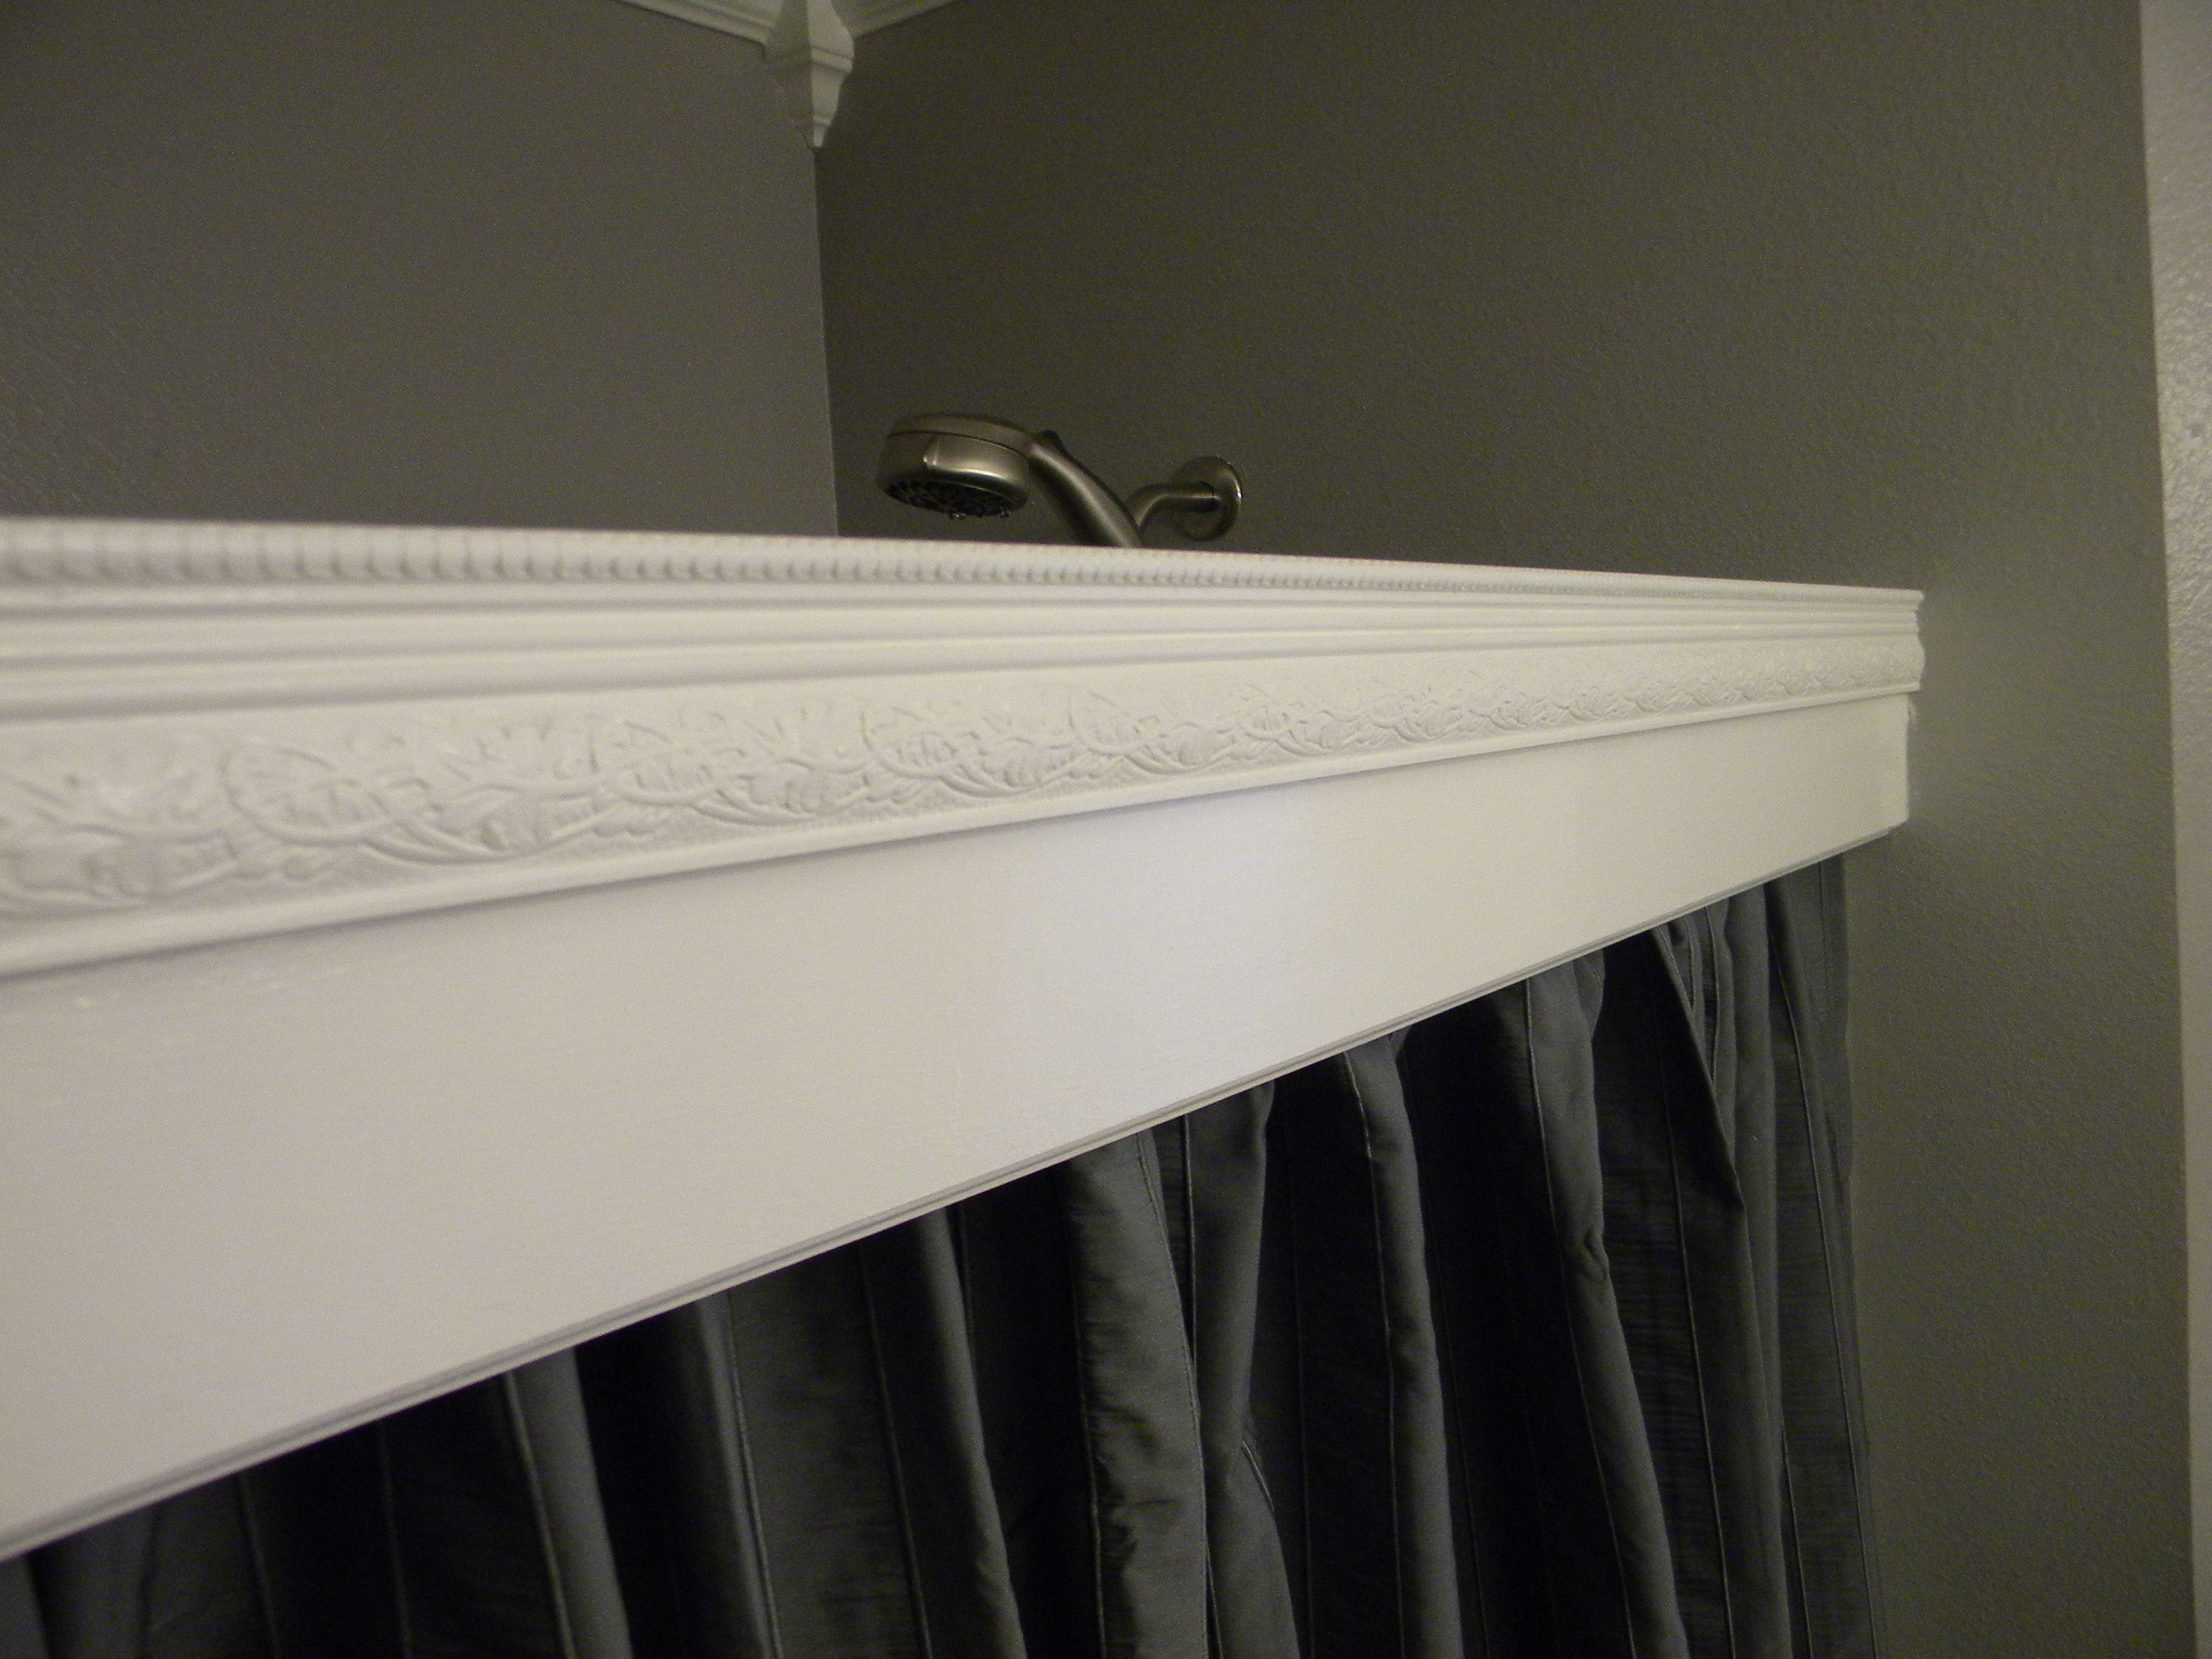 Shower curtain with cornice - Shower Curtain Cornice Hides The Rod And Rings